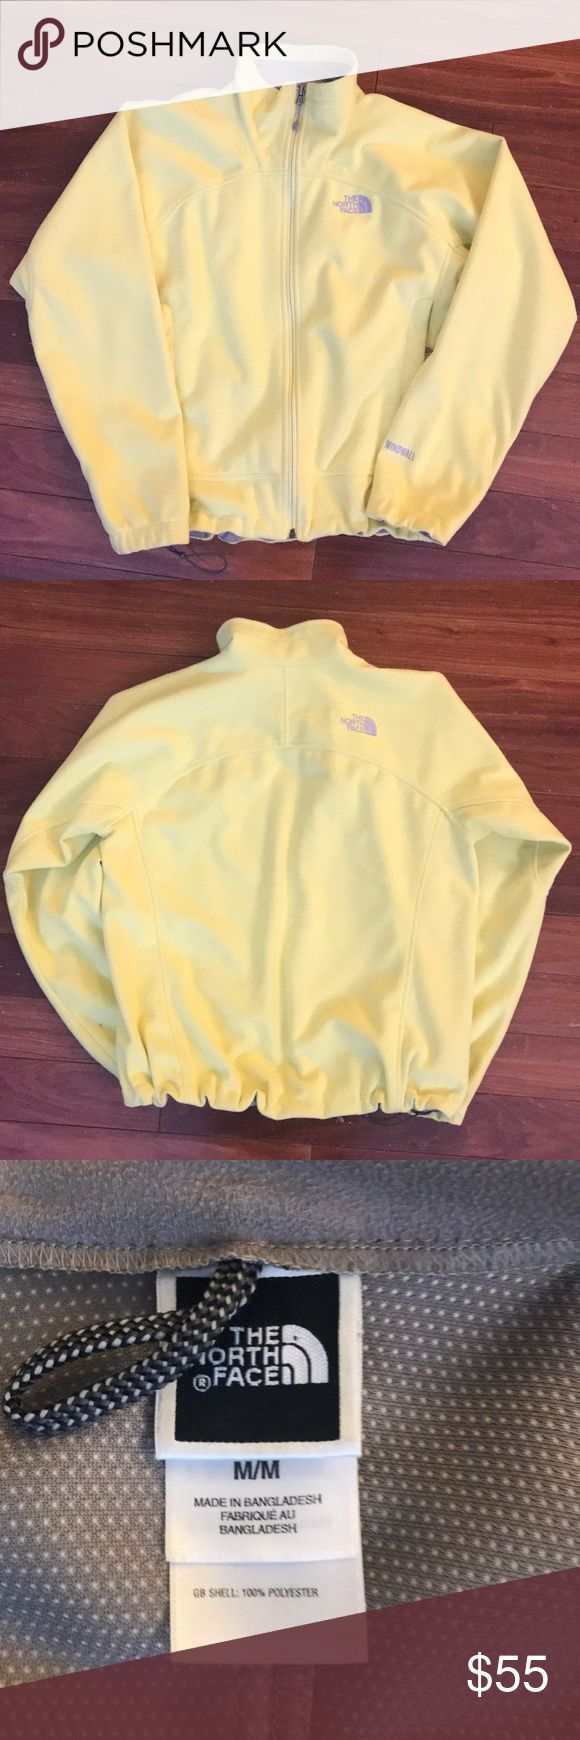 Yellow North Face spring jacket Lightweight fleece windfall jacket. Wind resistant. Outer is a soft yellow fleece and inner is a grey polyester lining. Super cute color for spring and. In overall good condition; no rips, holes, pilling or stains. Size M The North Face Jackets & Coats